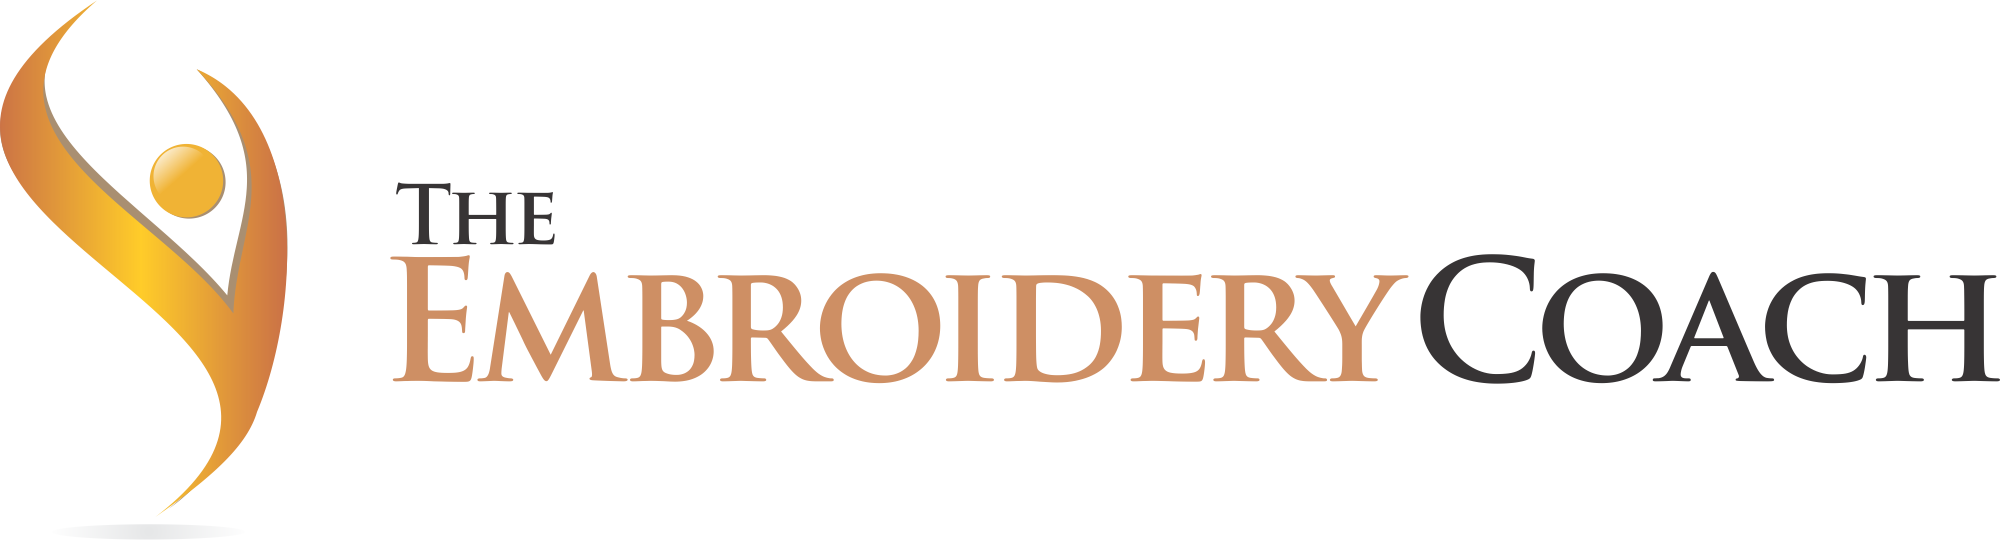 Embroidery Industry Expert | The Embroidery Coach